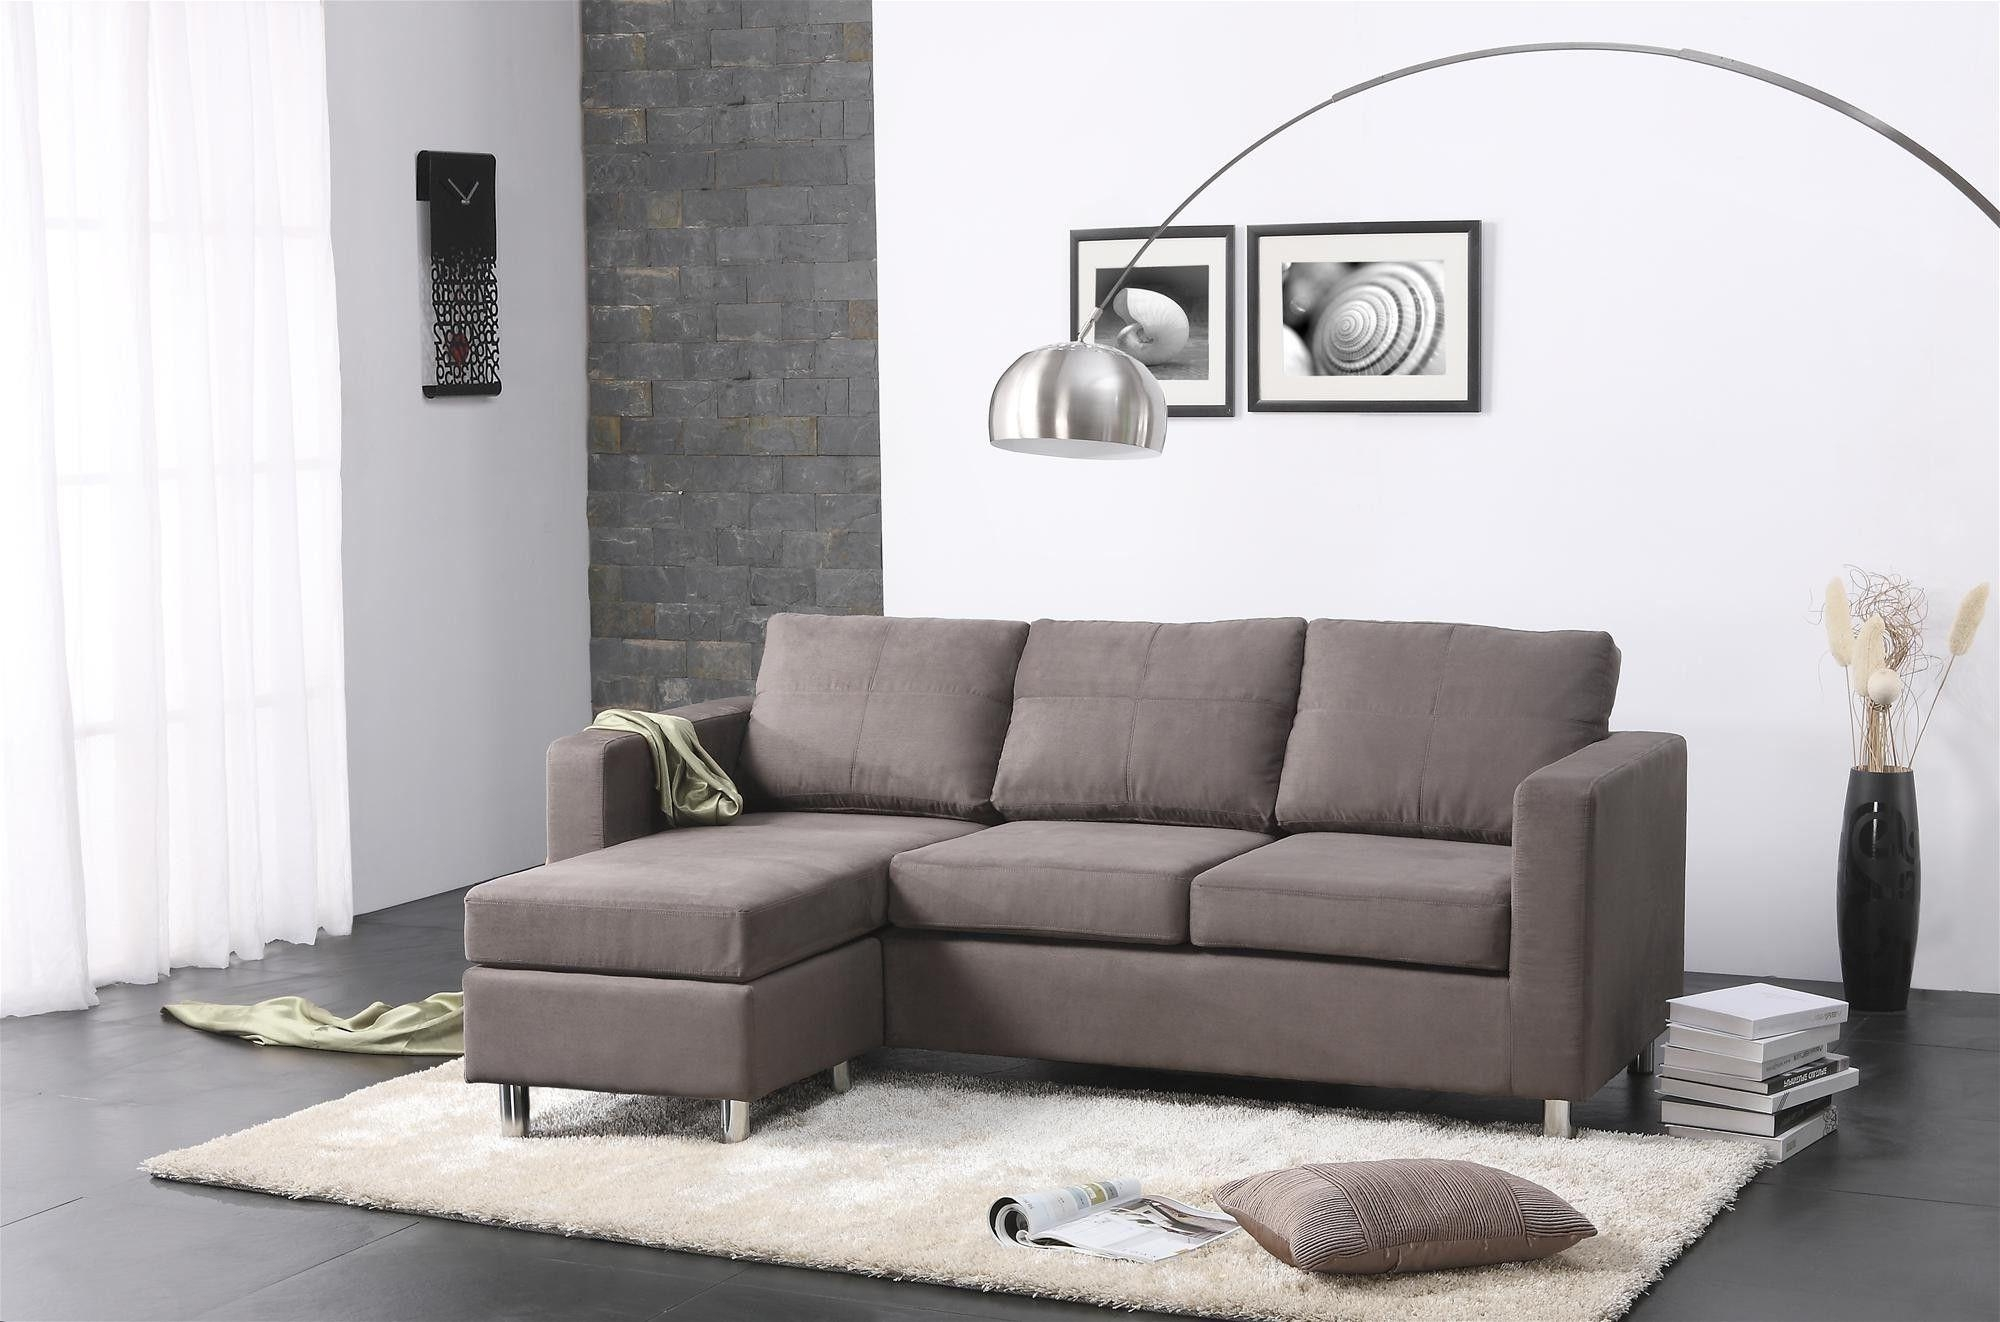 Opulent Ideas Couch For Small Living Room Exquisite Decoration 23 In Small Sectional Sofas For Small Spaces (Image 15 of 20)